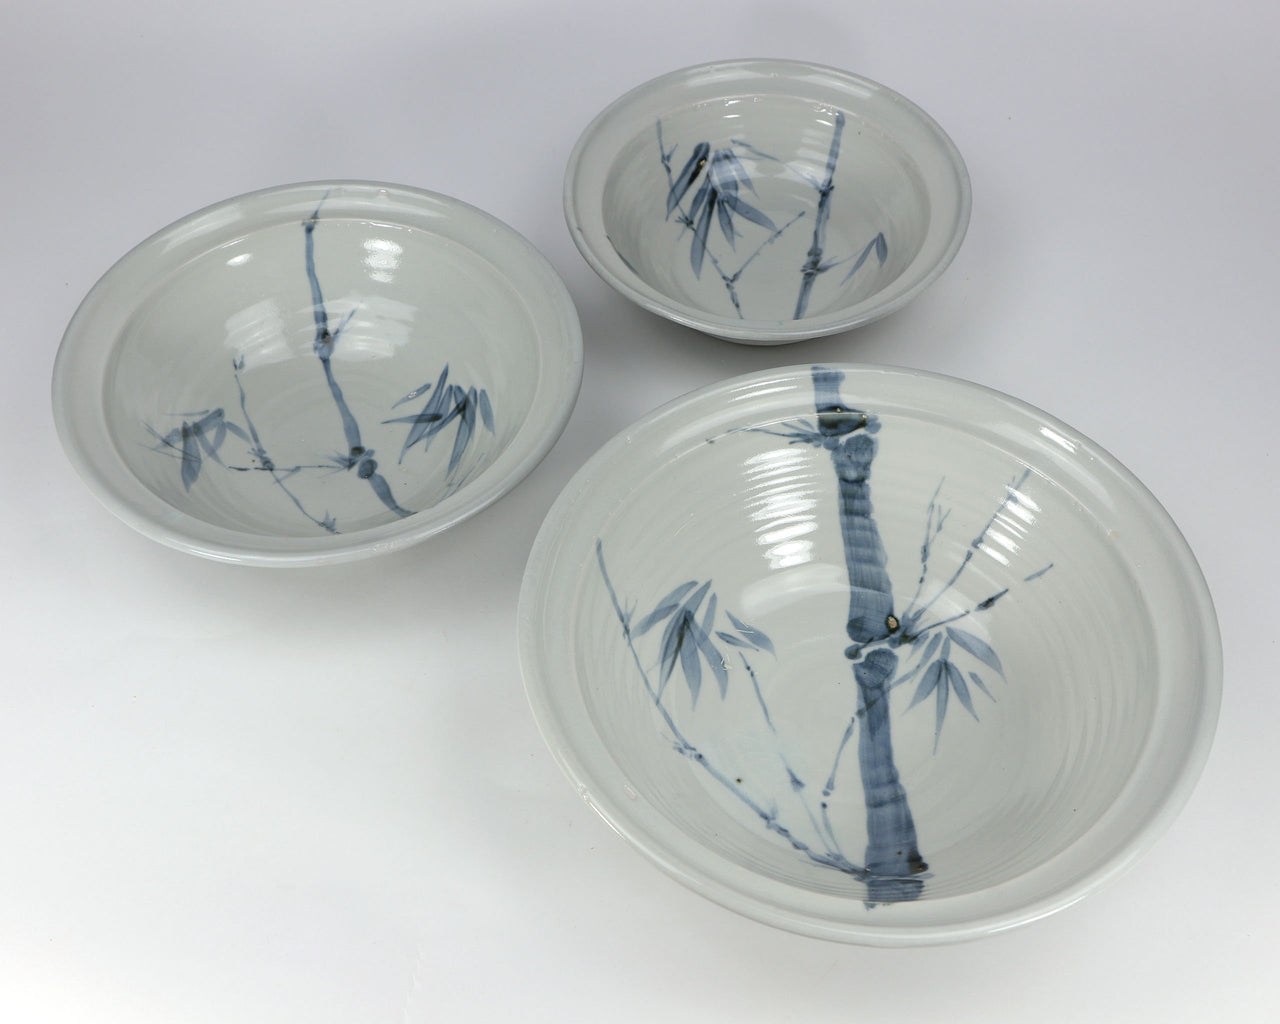 3-piece porcelain serving bowl set in a hand-painted bamboo pattern and translucent glaze. Approximately 26 ounces in volume, chip-resistant, oven- and dishwasher-safe. Each piece is unique--shape, size and color will vary.